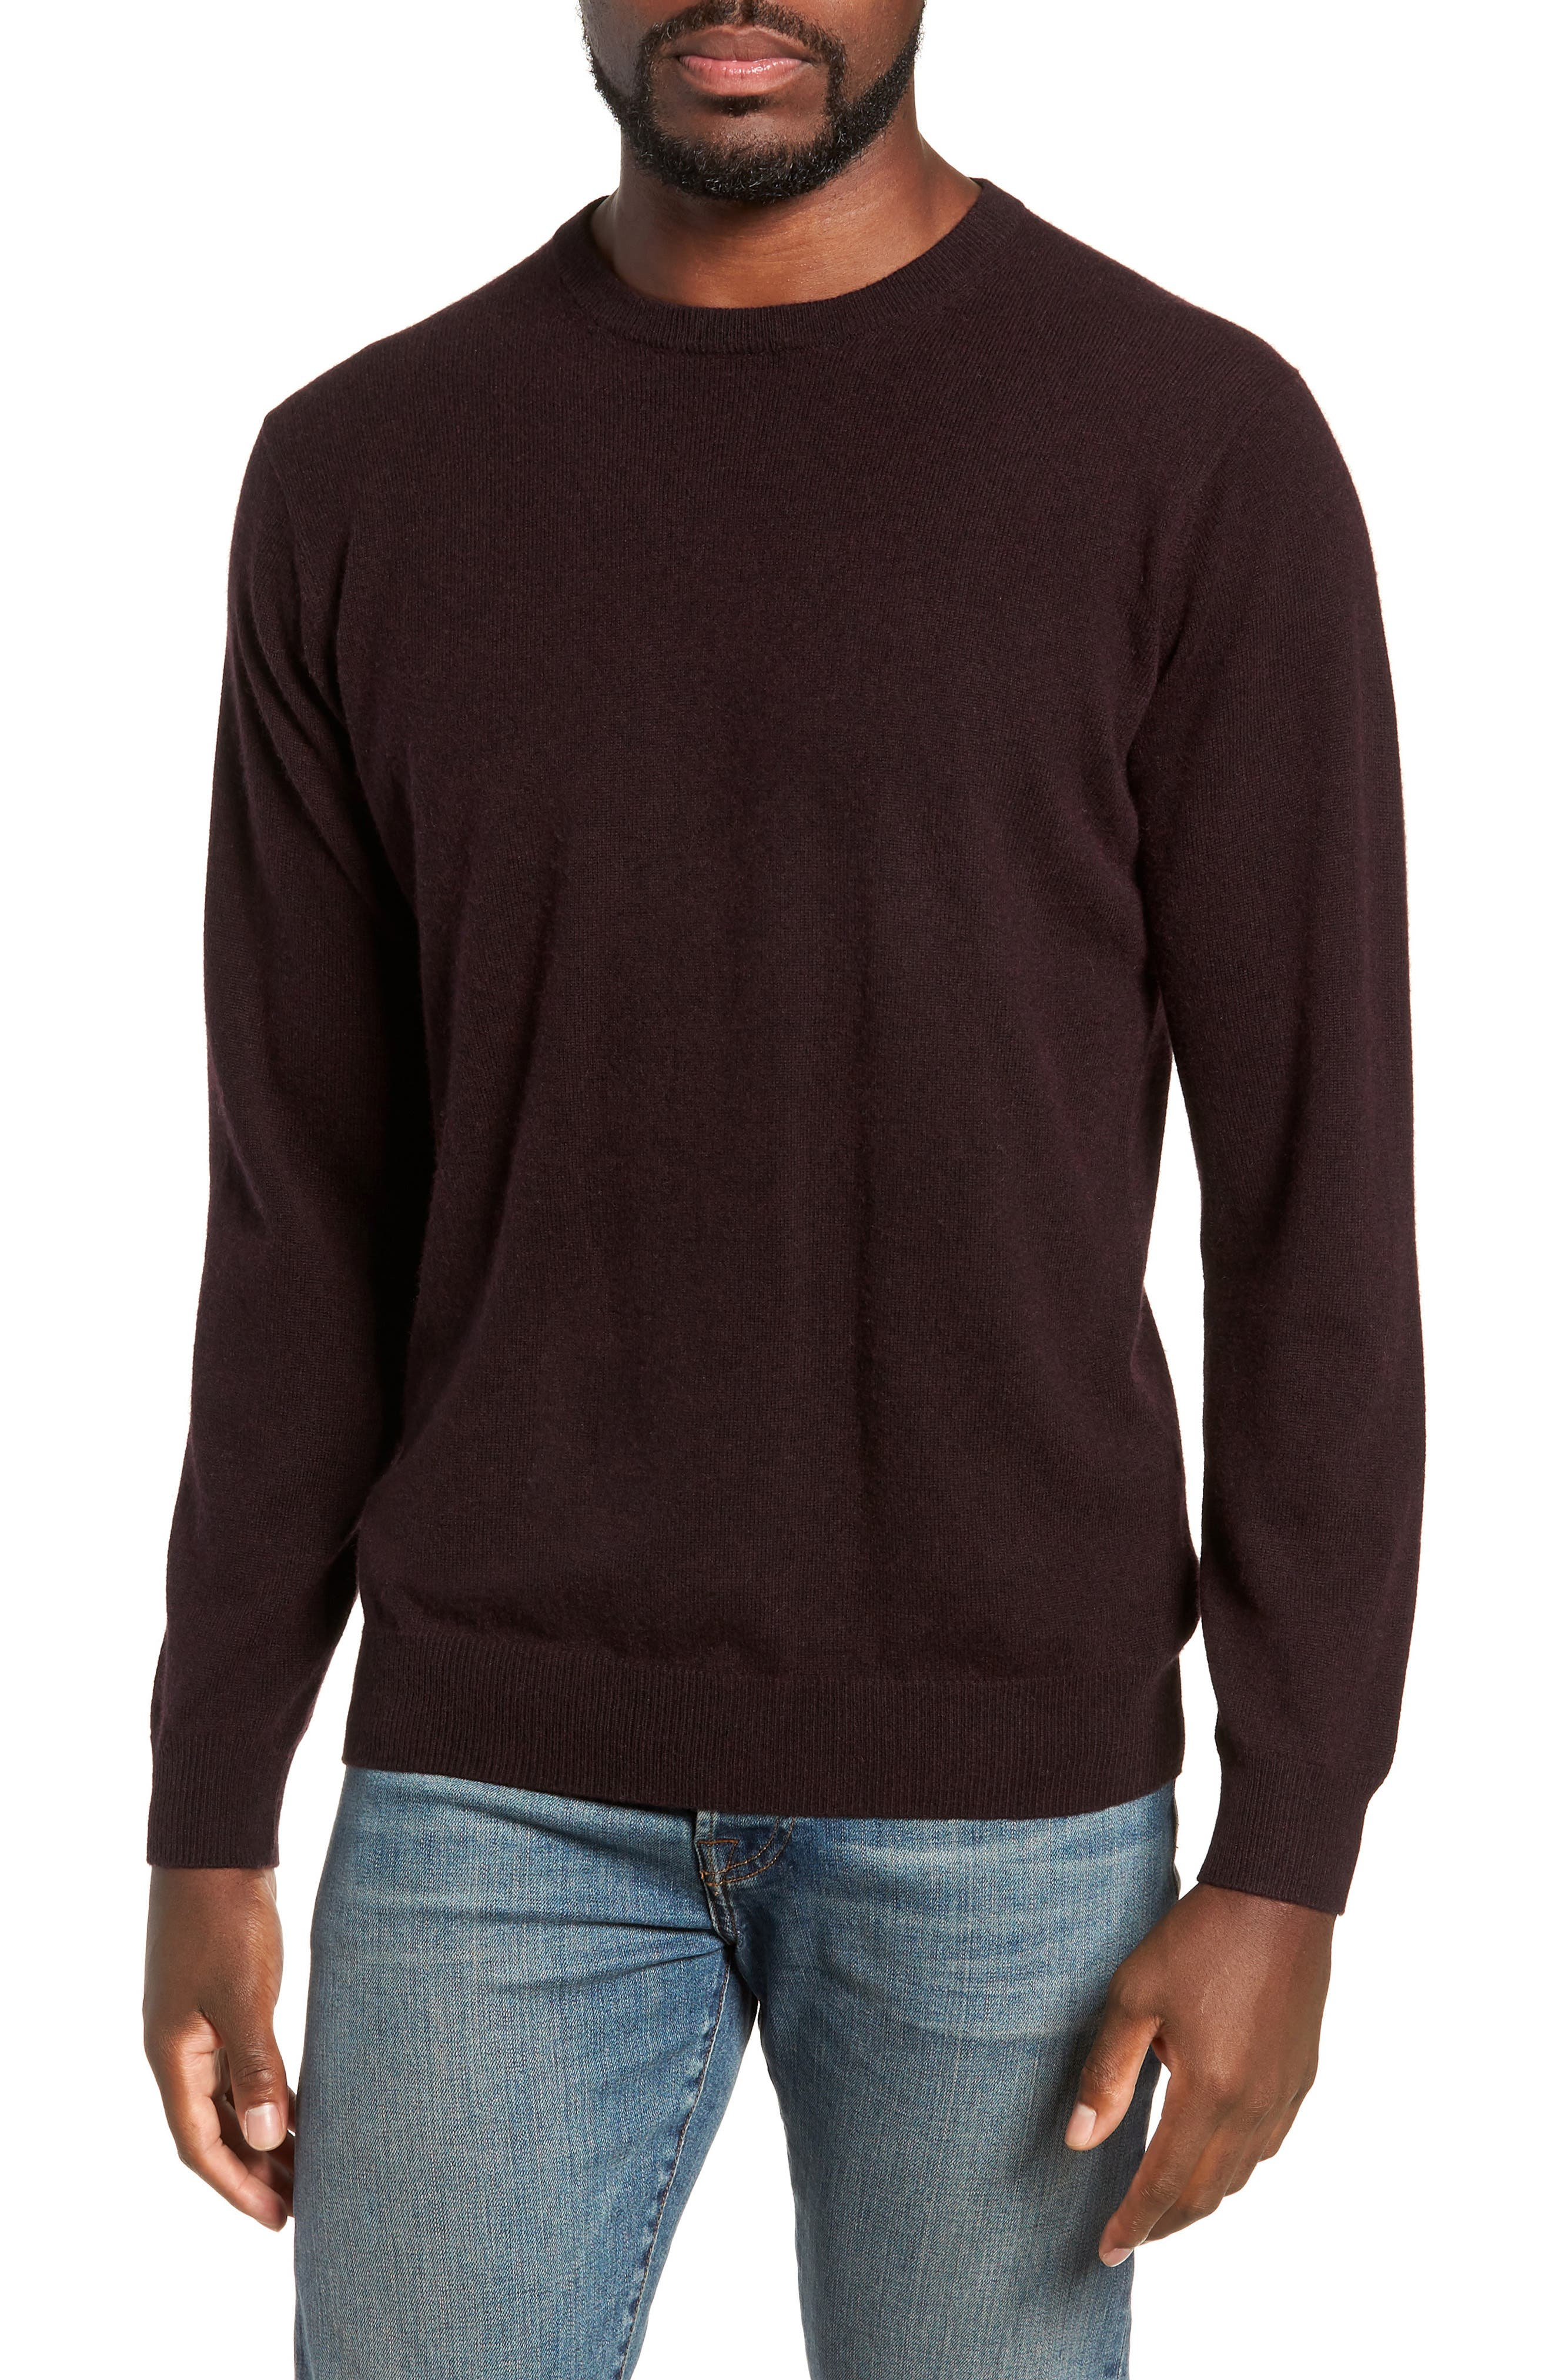 Queenstown Wool & Cashmere Sweater,                             Main thumbnail 1, color,                             BLACK FIG